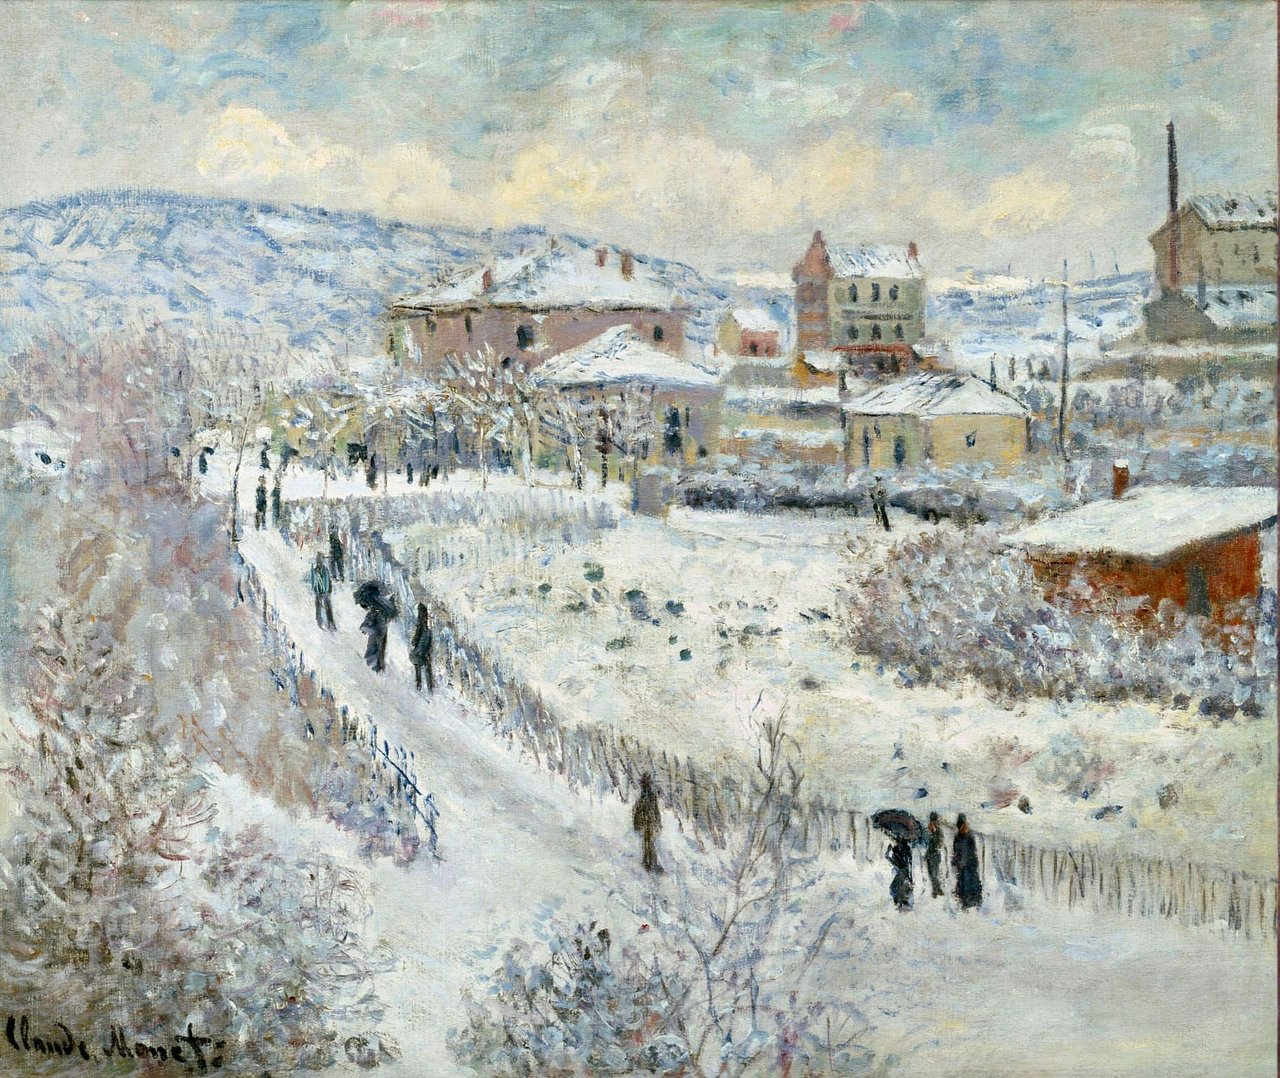 View of Argenteuil in the Snow, 1875 https://www.wikiart.org/en/claude-monet/view-of-argenteuil-in-the-snow #frenchart #impressionism https://t.co/KxKUUkGGPQ